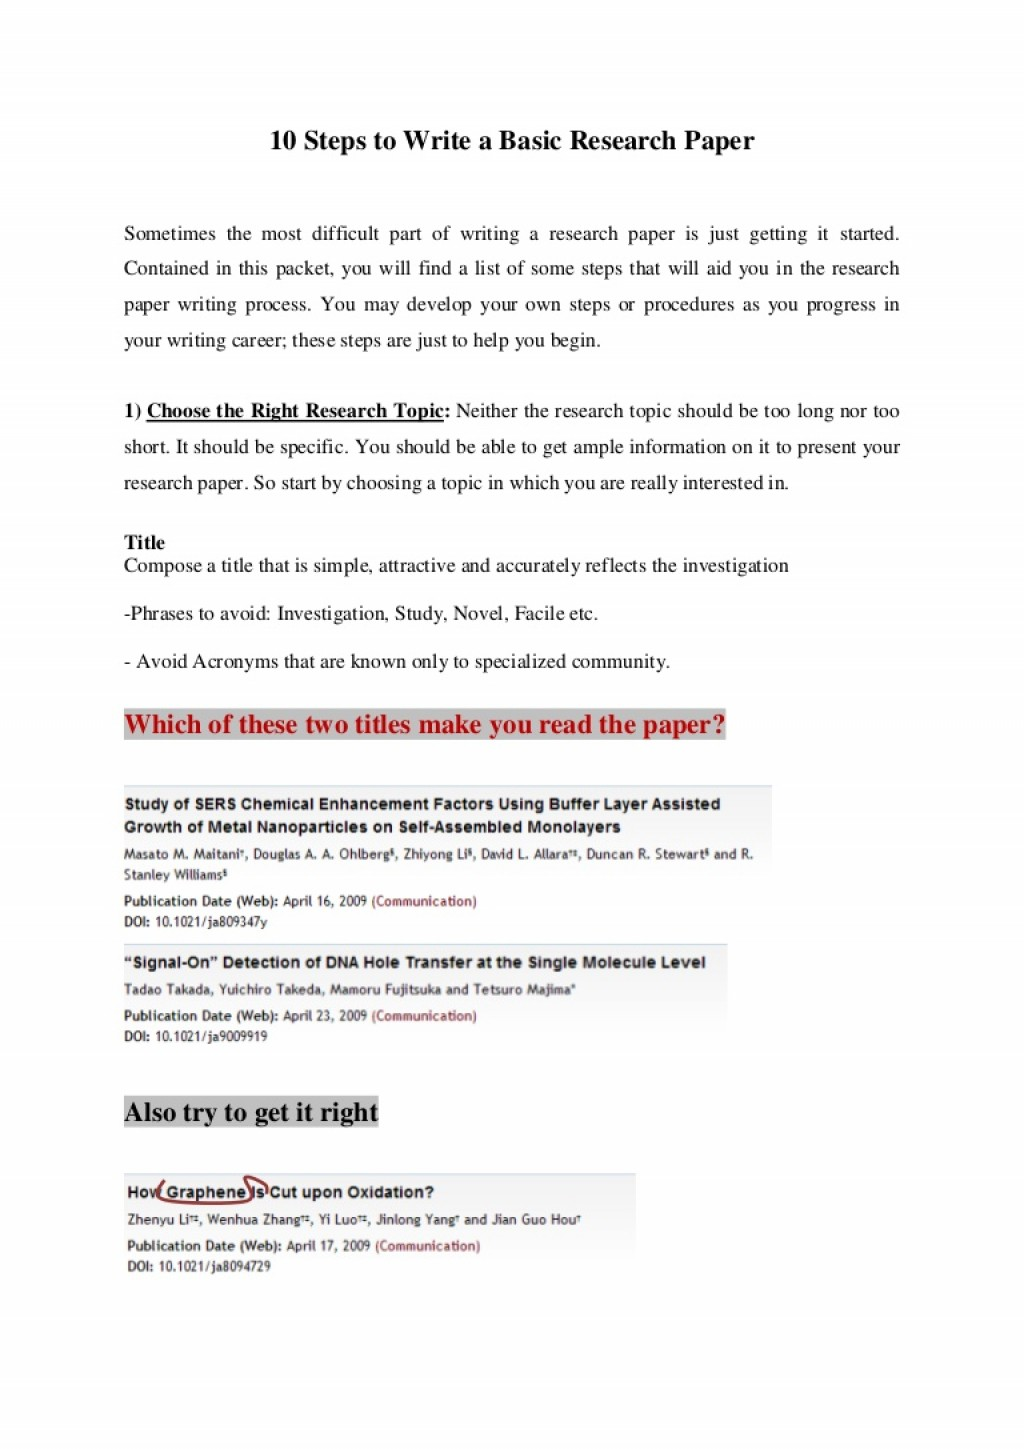 001 Steps Writing Research Paper 10stepstowriteabasicresearchpaper Thumbnail Best 10 To A Page Pdf Large